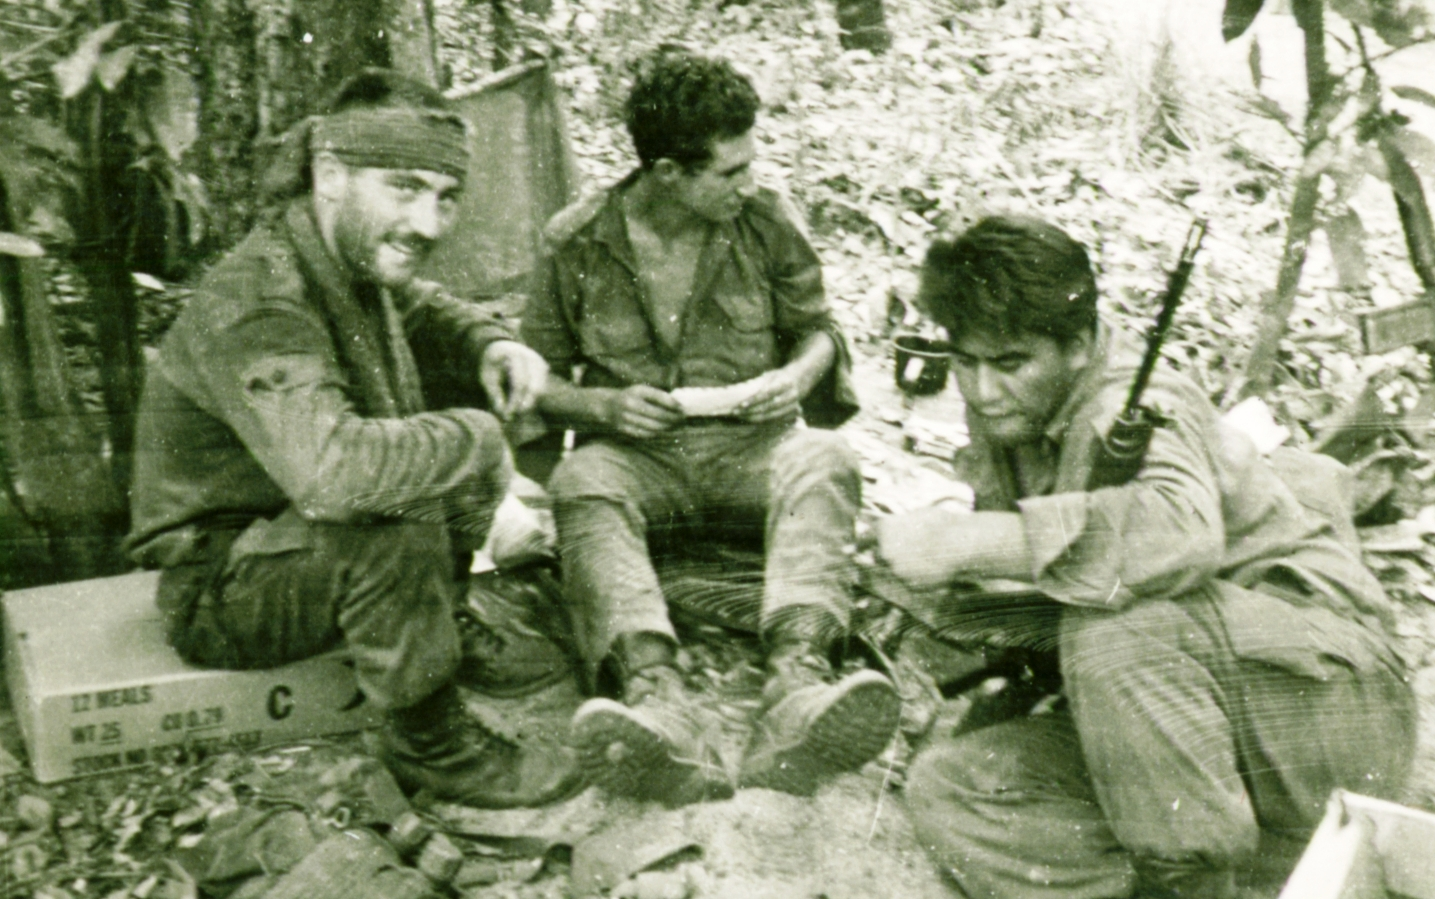 grub & mail - Pte Colin Drylie, Pte Vic Hill & Pte Roy Whatarangi 3Pl [Brooker]